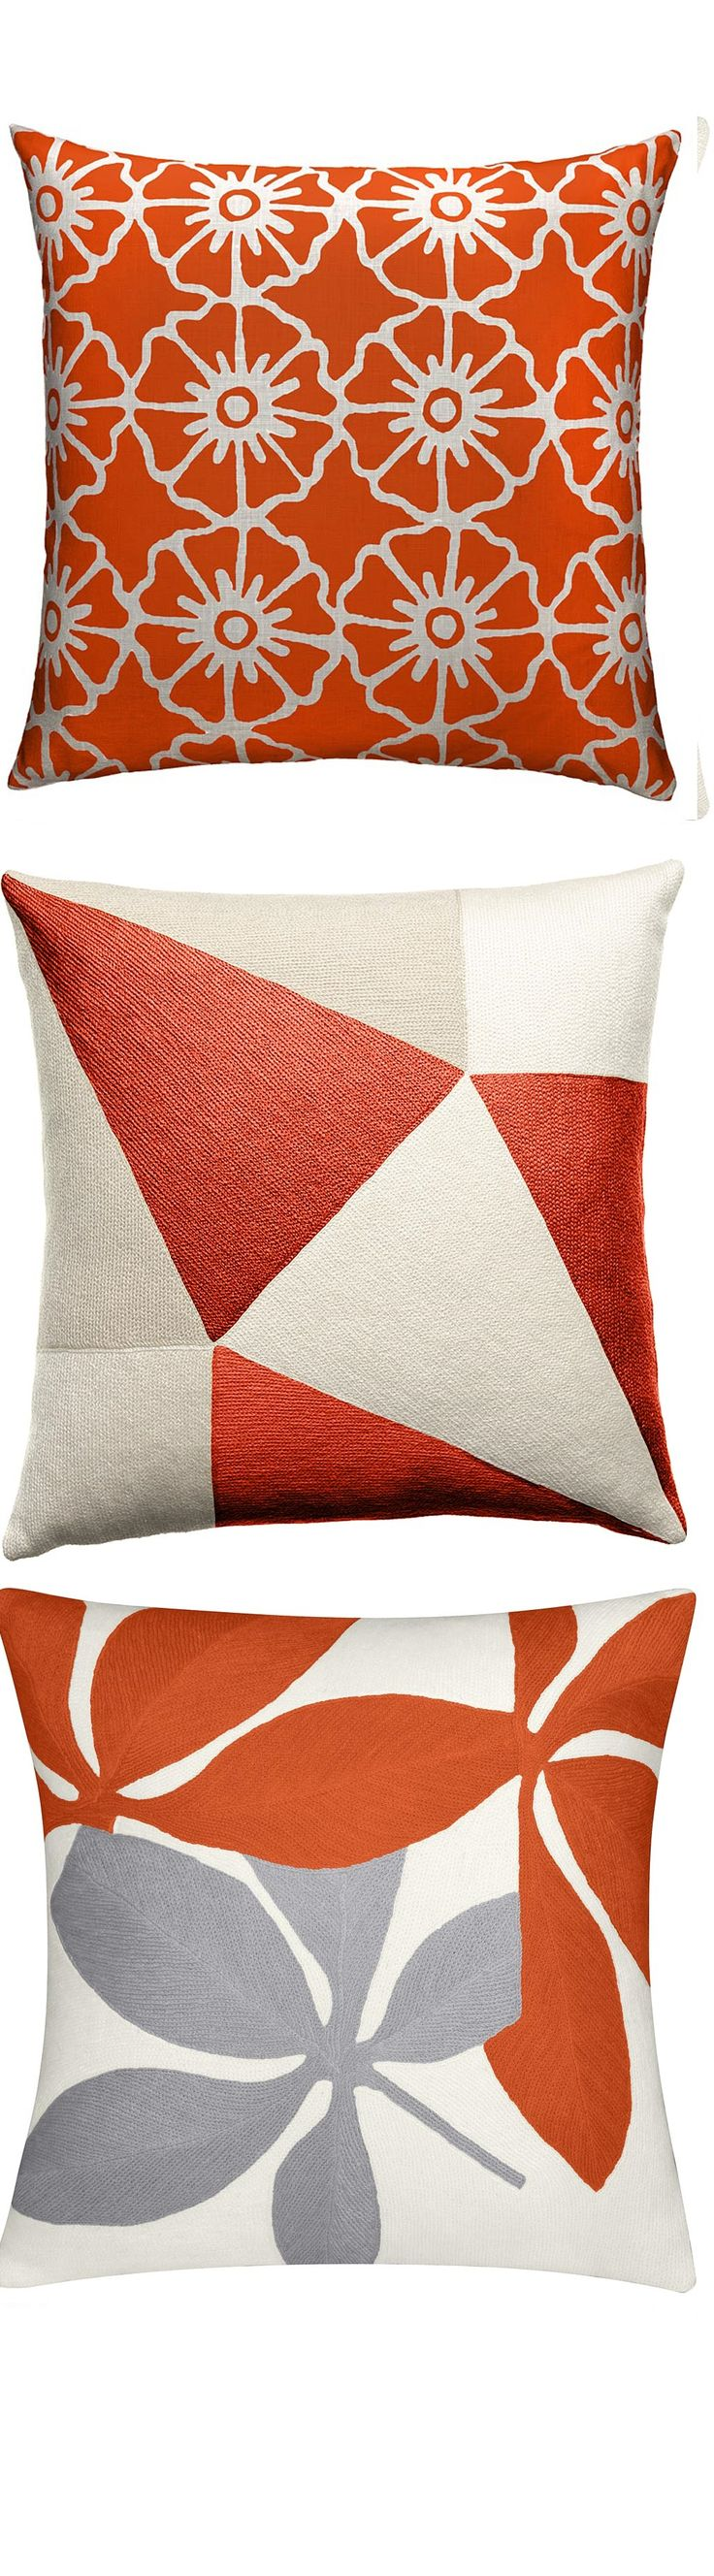 best 25 orange throw pillows ideas only on pinterest orange pillow covers orange furniture sets and natural cushion covers